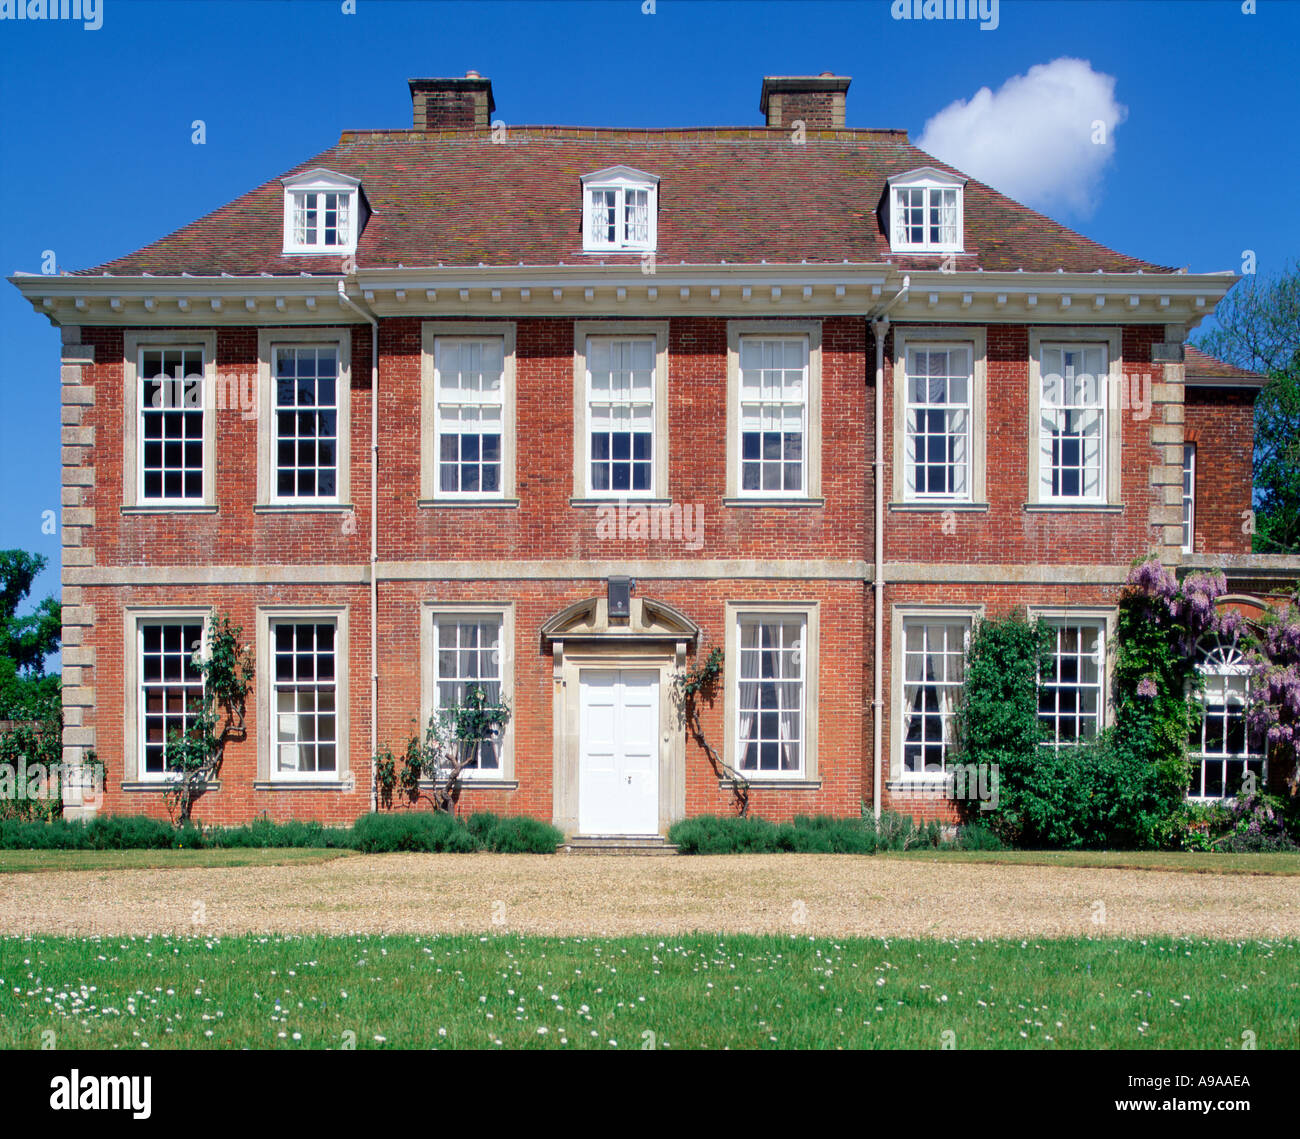 Frontal View Of Elegant 18th Century English Country House UK